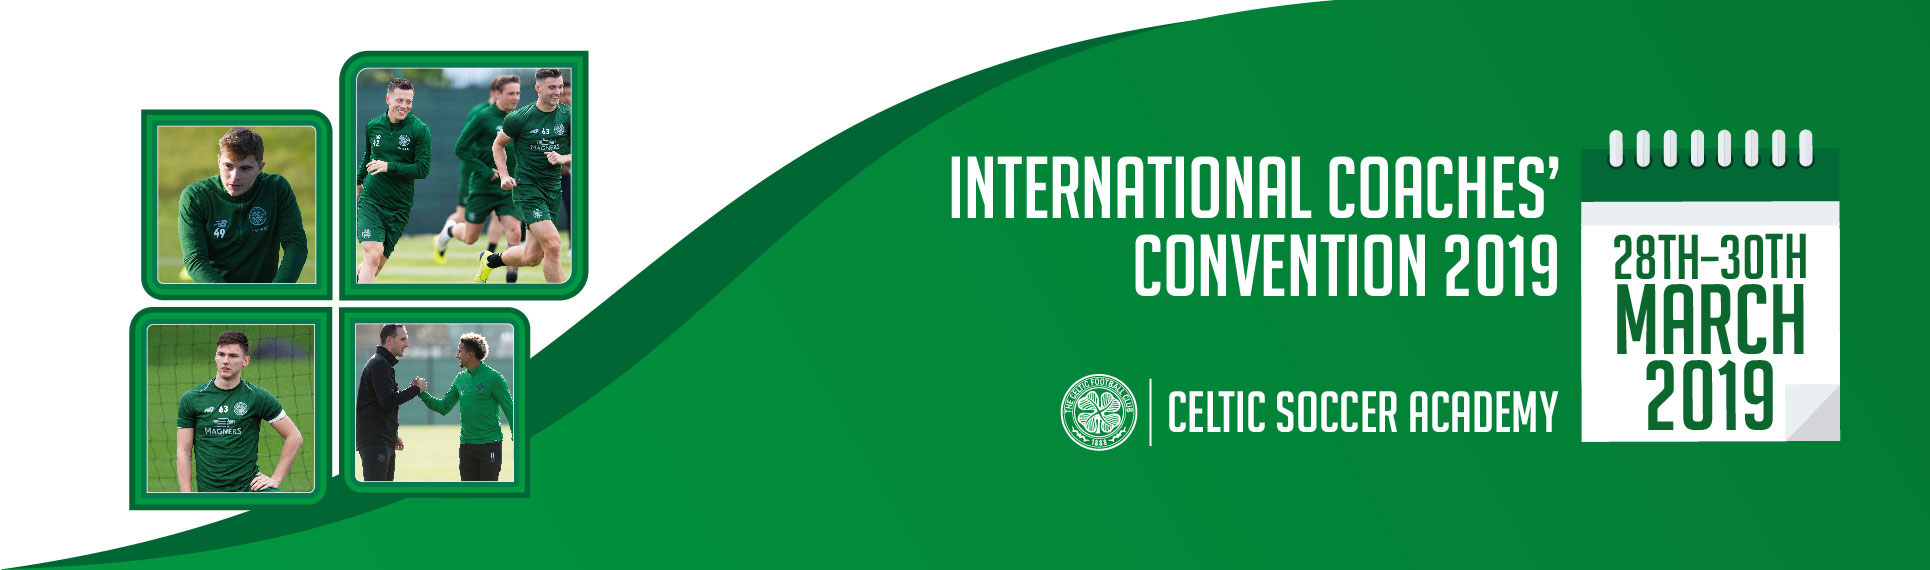 Coaches-Convention-2019-Save-The-Date-A5_INT_DIGITAL_Web-Banner-1930x570